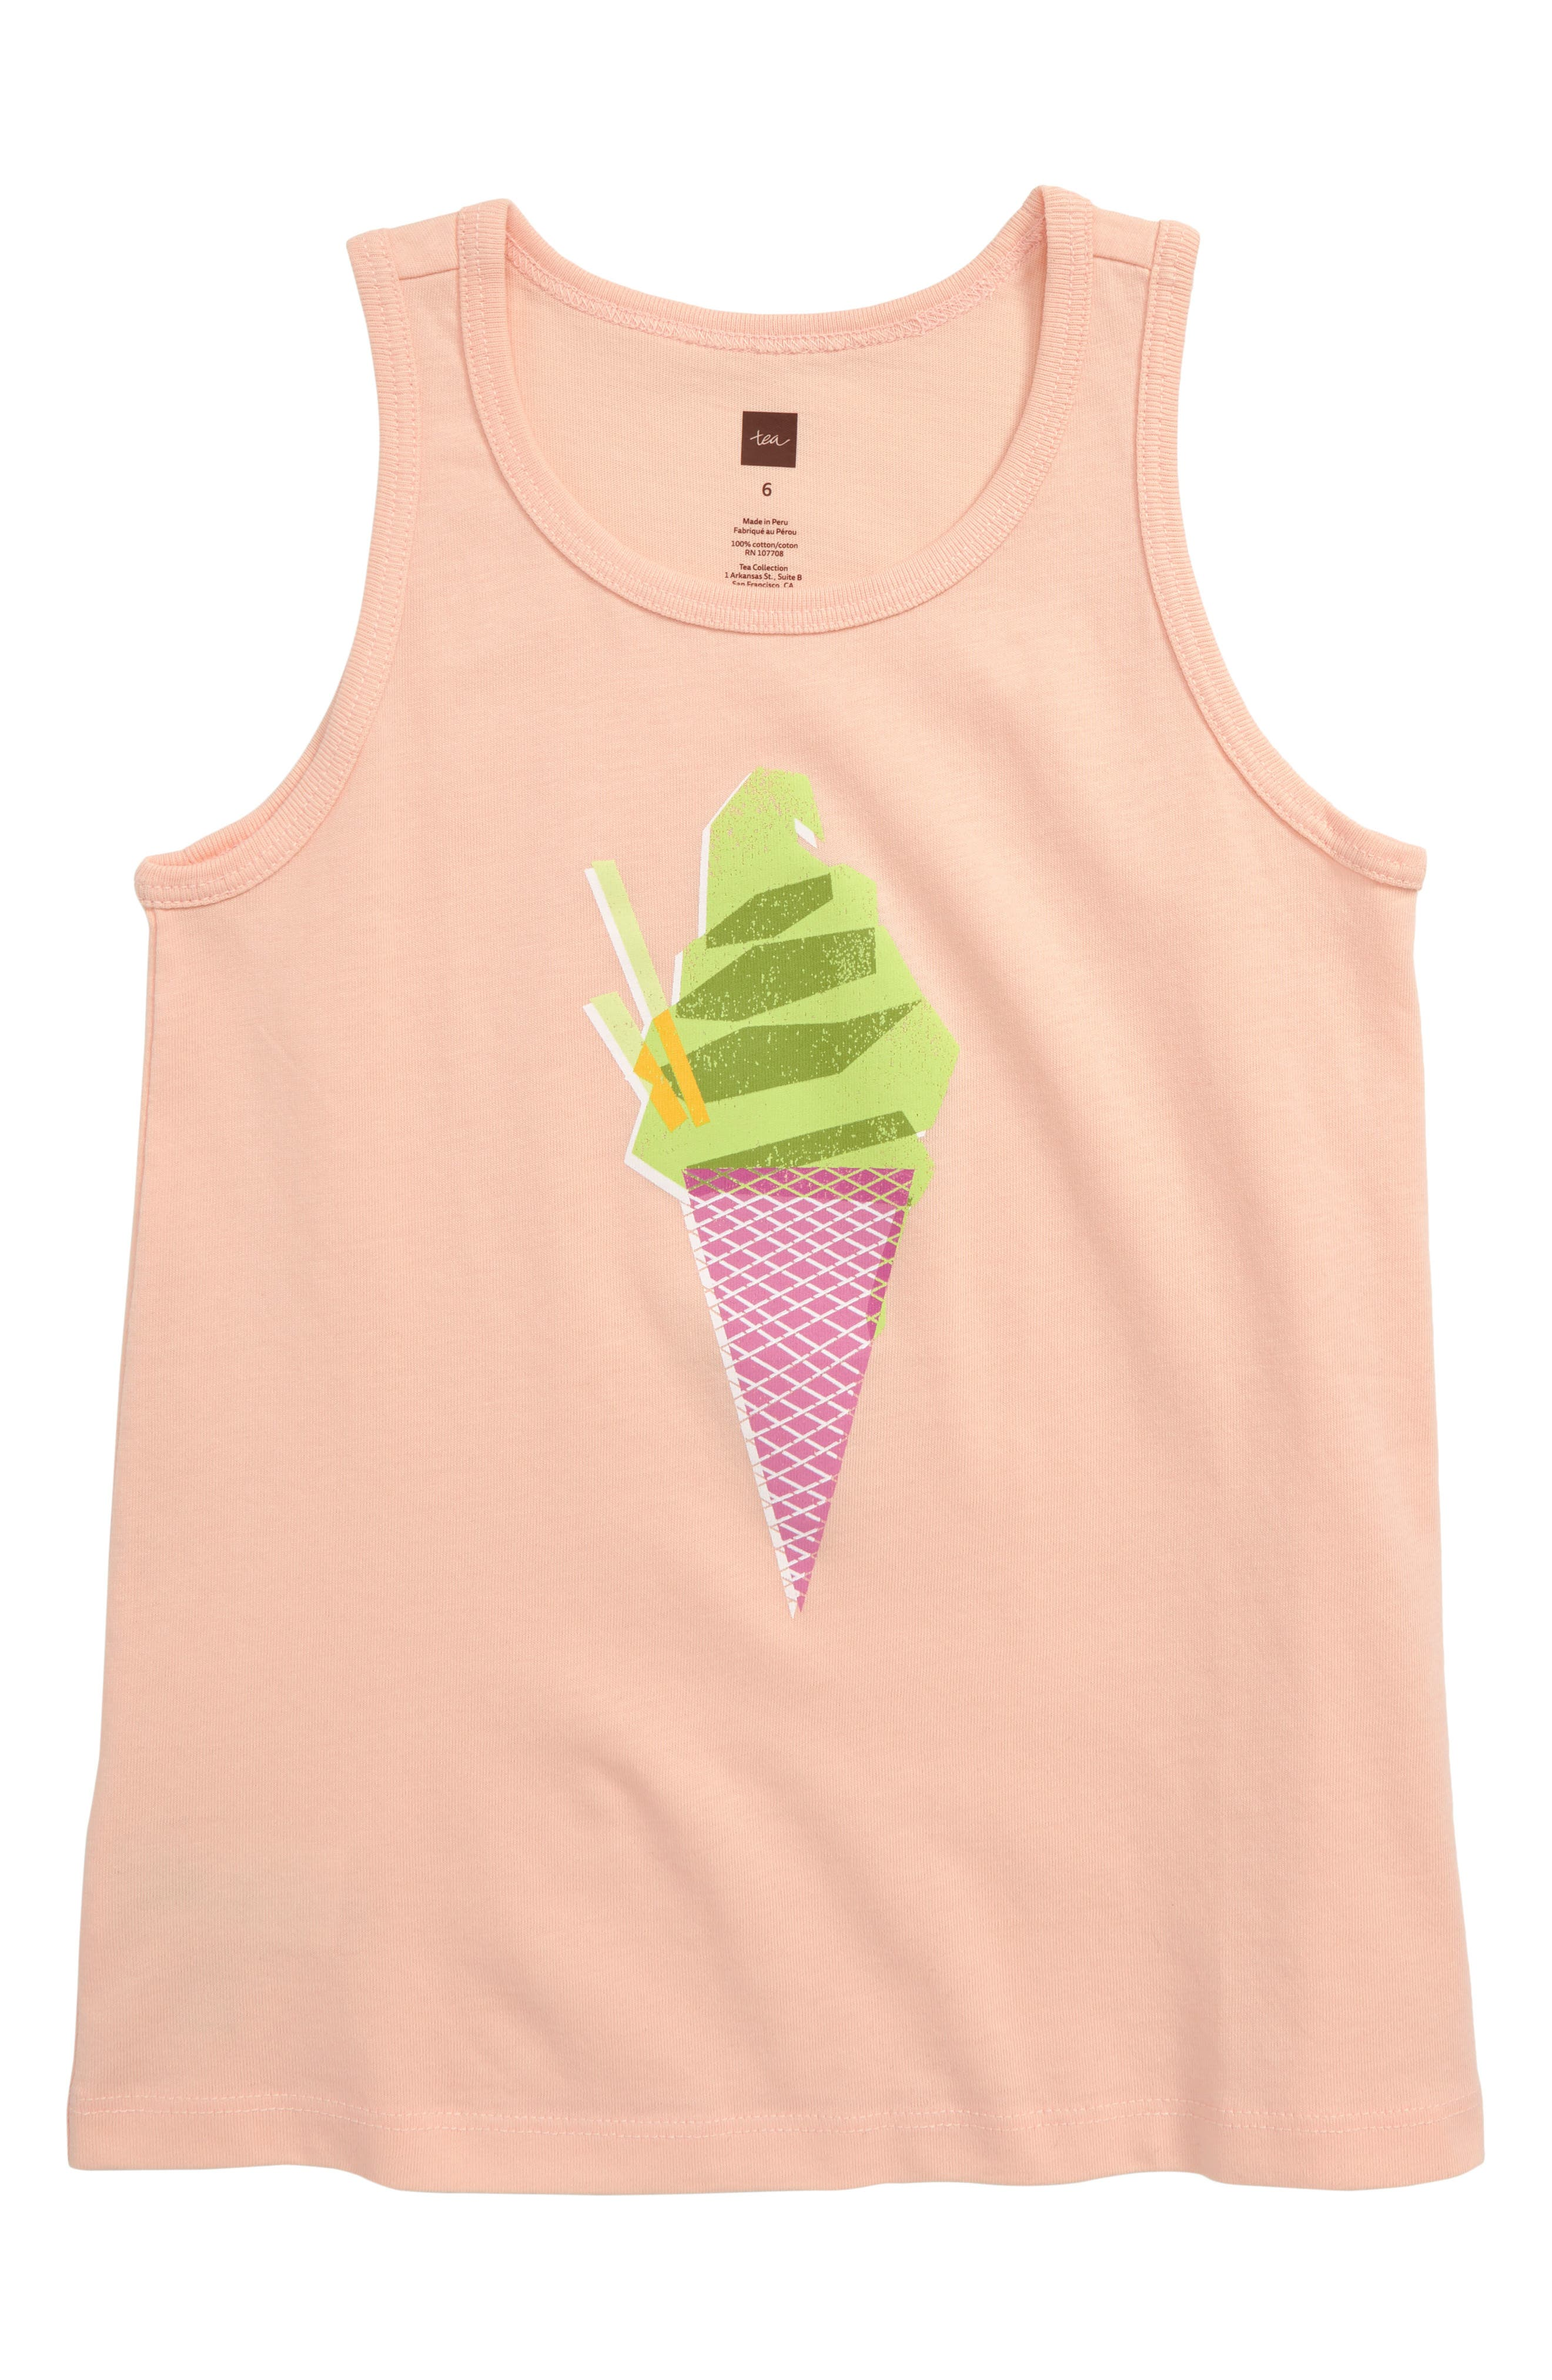 Toddler Girls Tea Collection Ice Cream Graphic Tank Size 2T  Pink